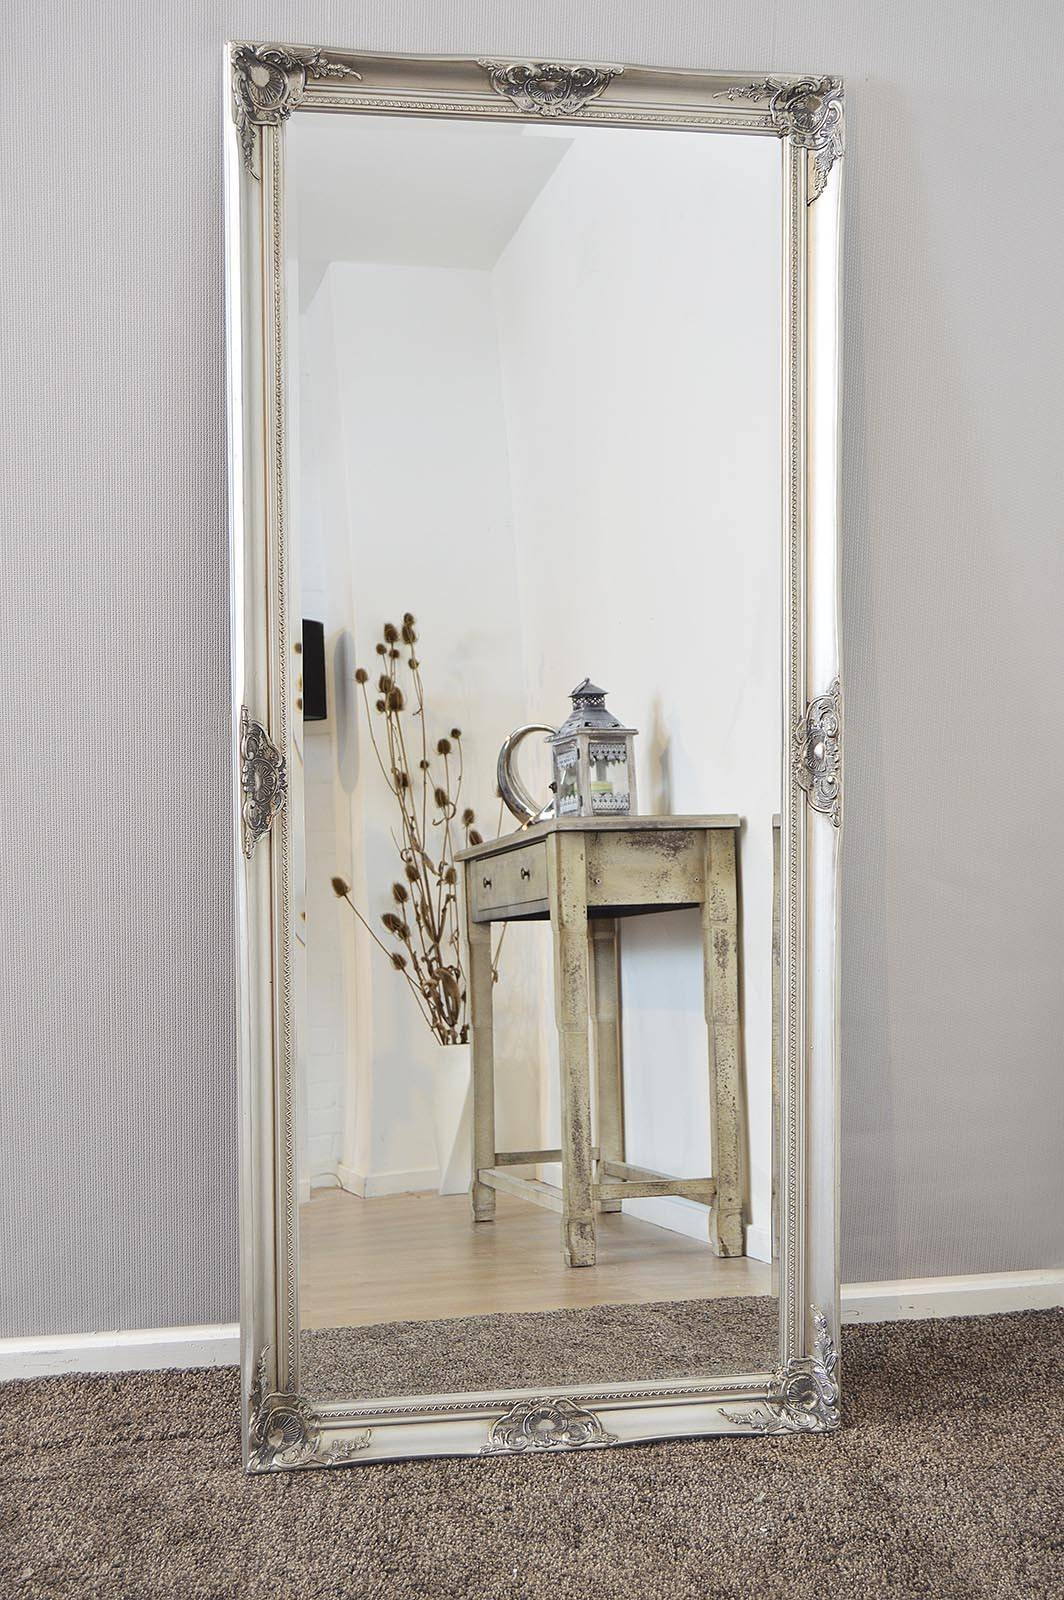 Large Silver Wall Mirror 76 Inspiring Style For Mirrors Pleasing inside Silver Ornate Framed Mirrors (Image 11 of 25)